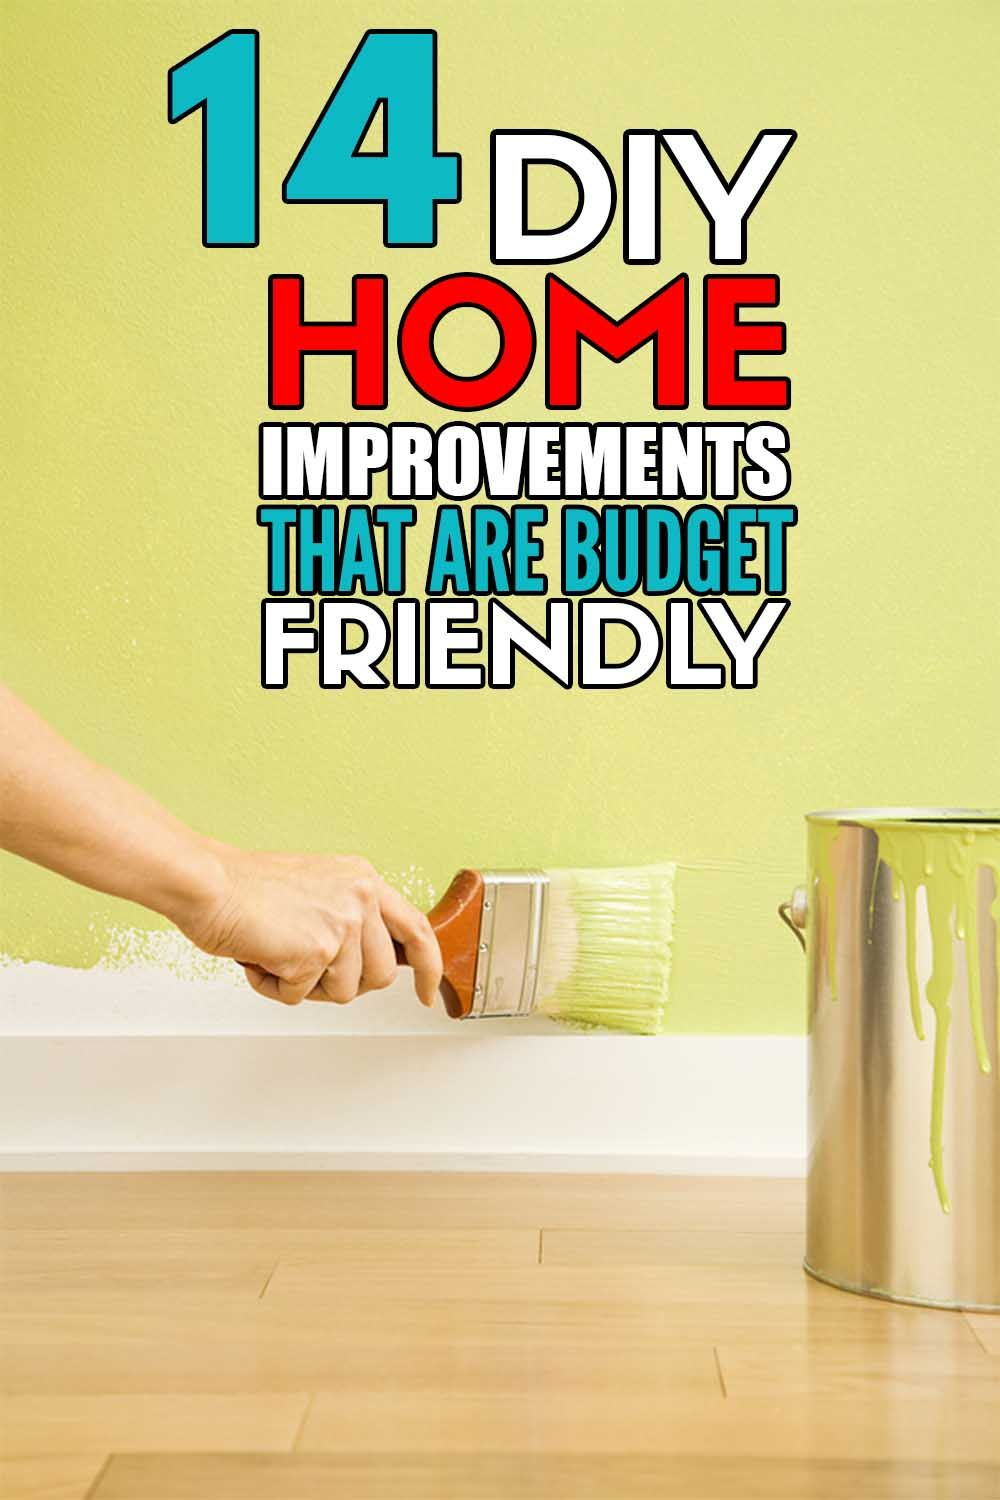 14 Budget Friendly Home Improvements That Cost Less Than 100 To Complete Forever Free By Any Means In 2020 Easy Home Upgrades Home Improvement Home Diy